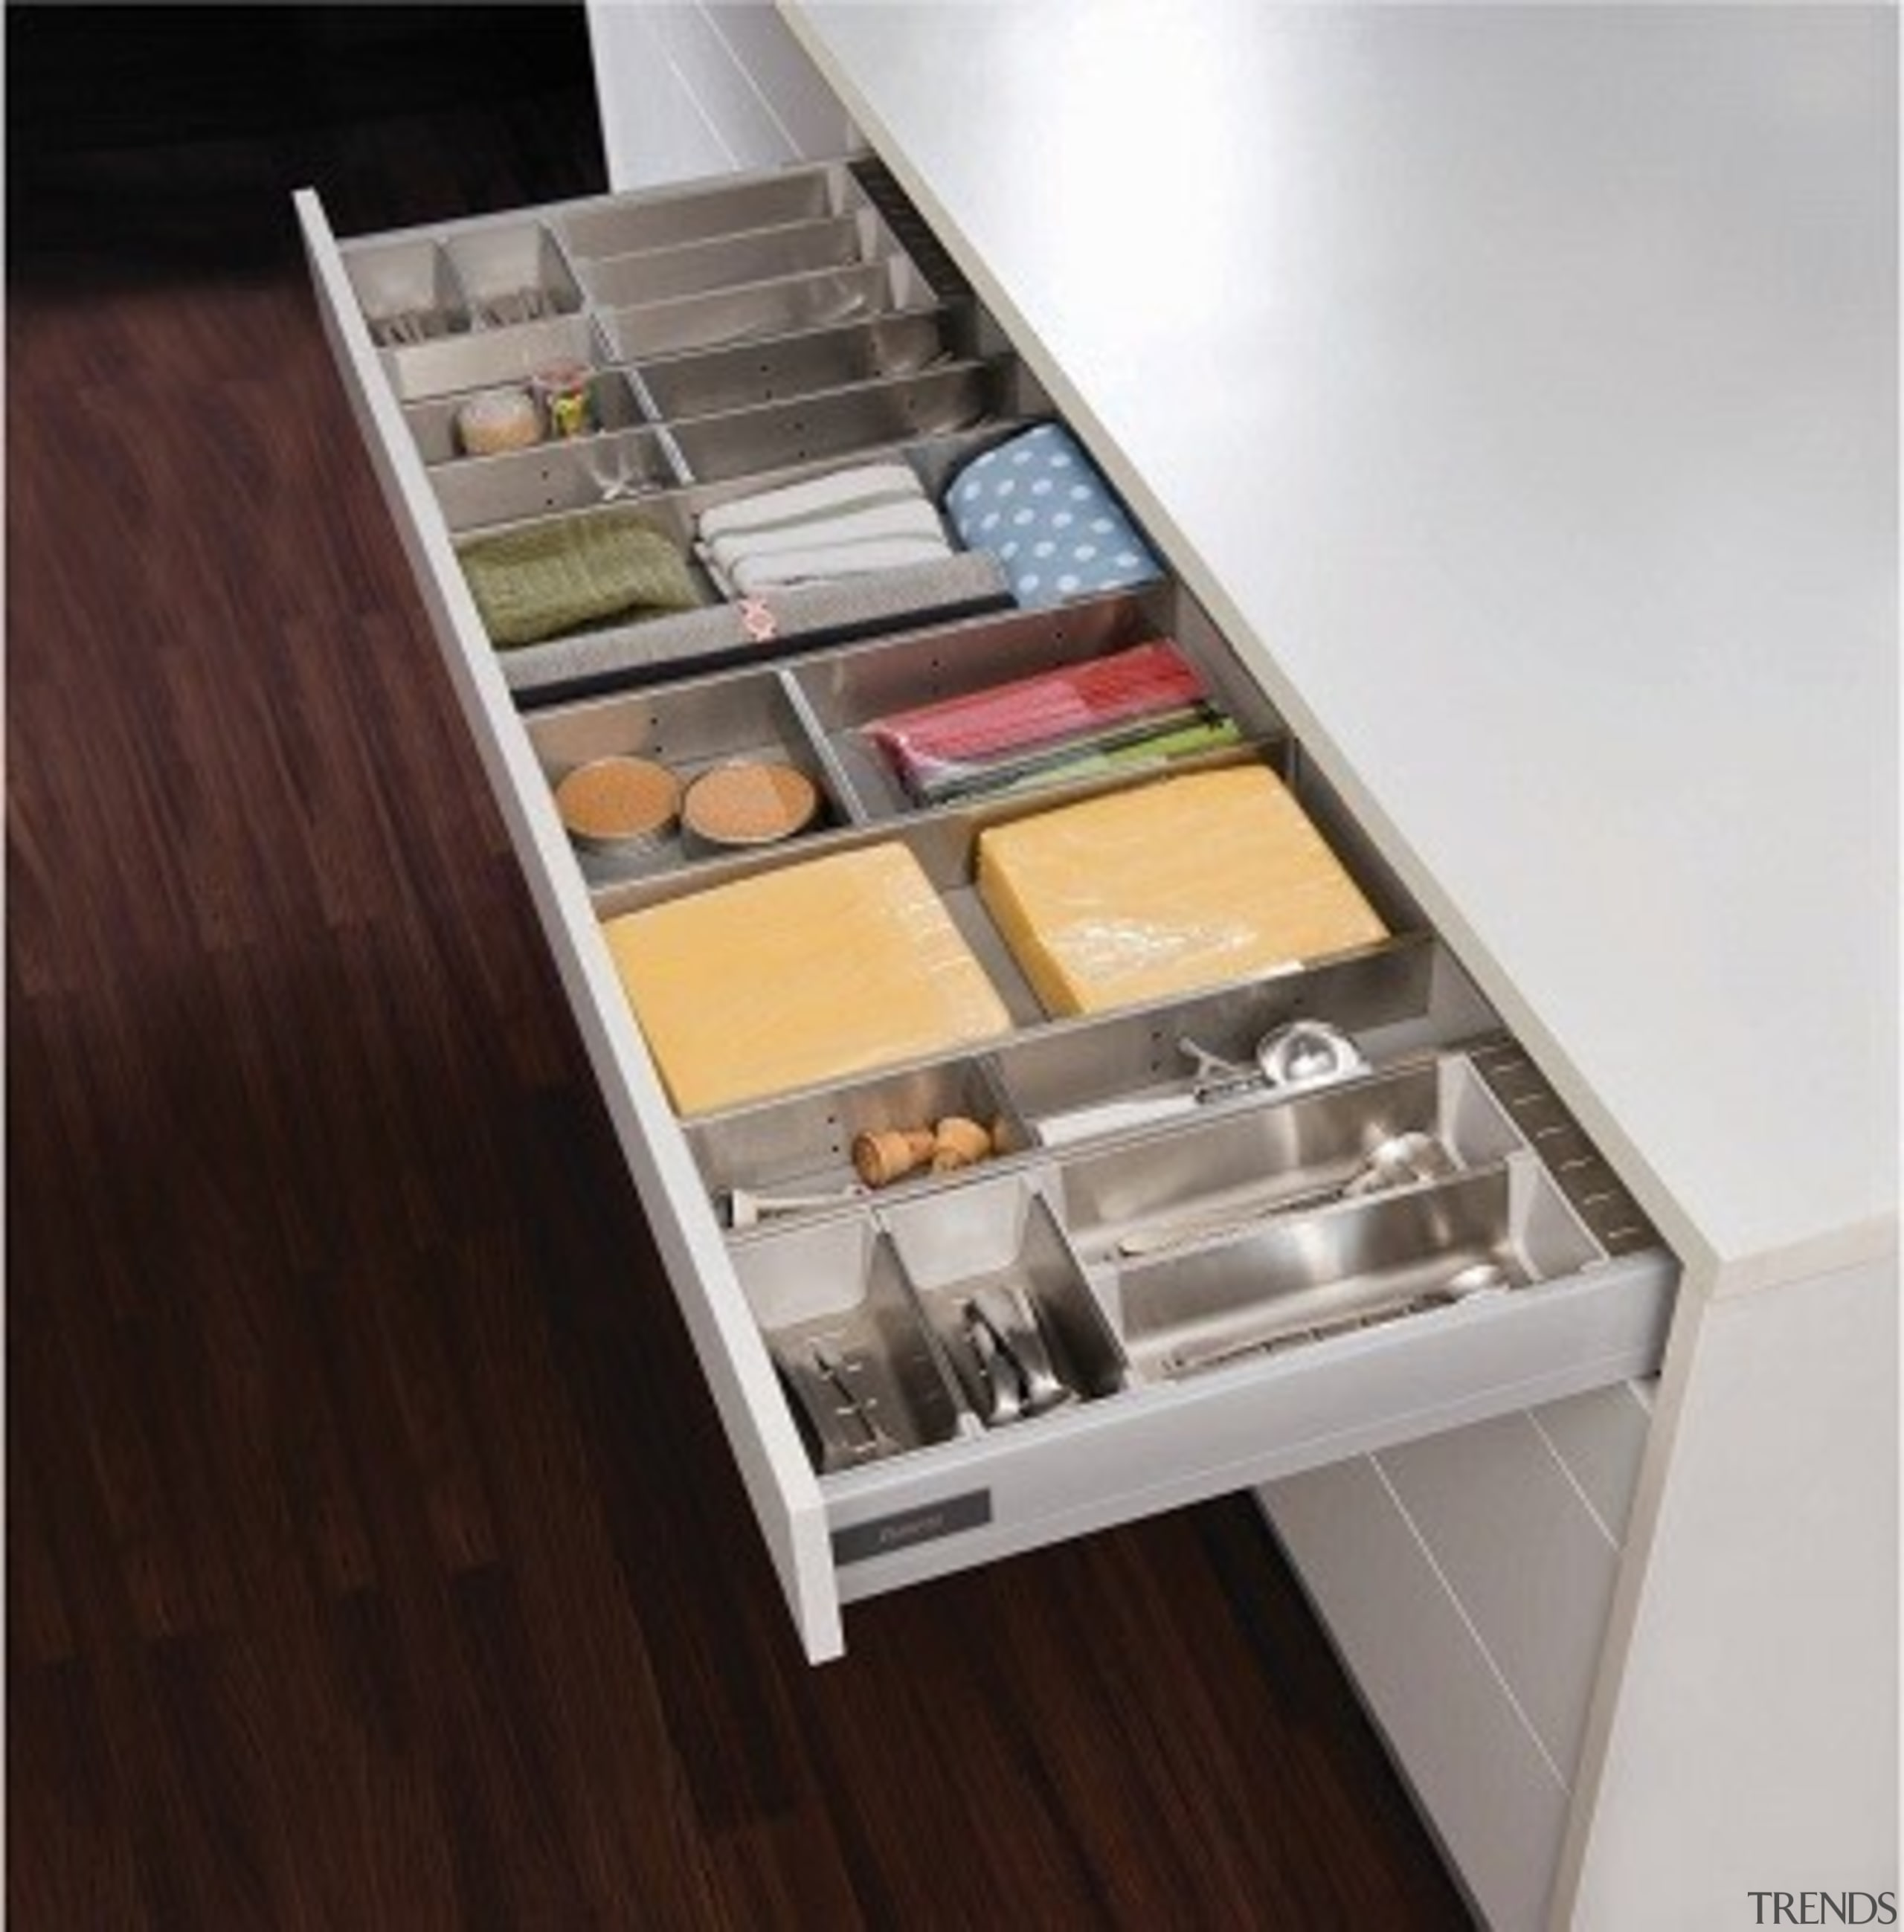 Team up Harn Triomax drawers with Impala Inoxa countertop, drawer, furniture, kitchen, product, product design, table, gray, black